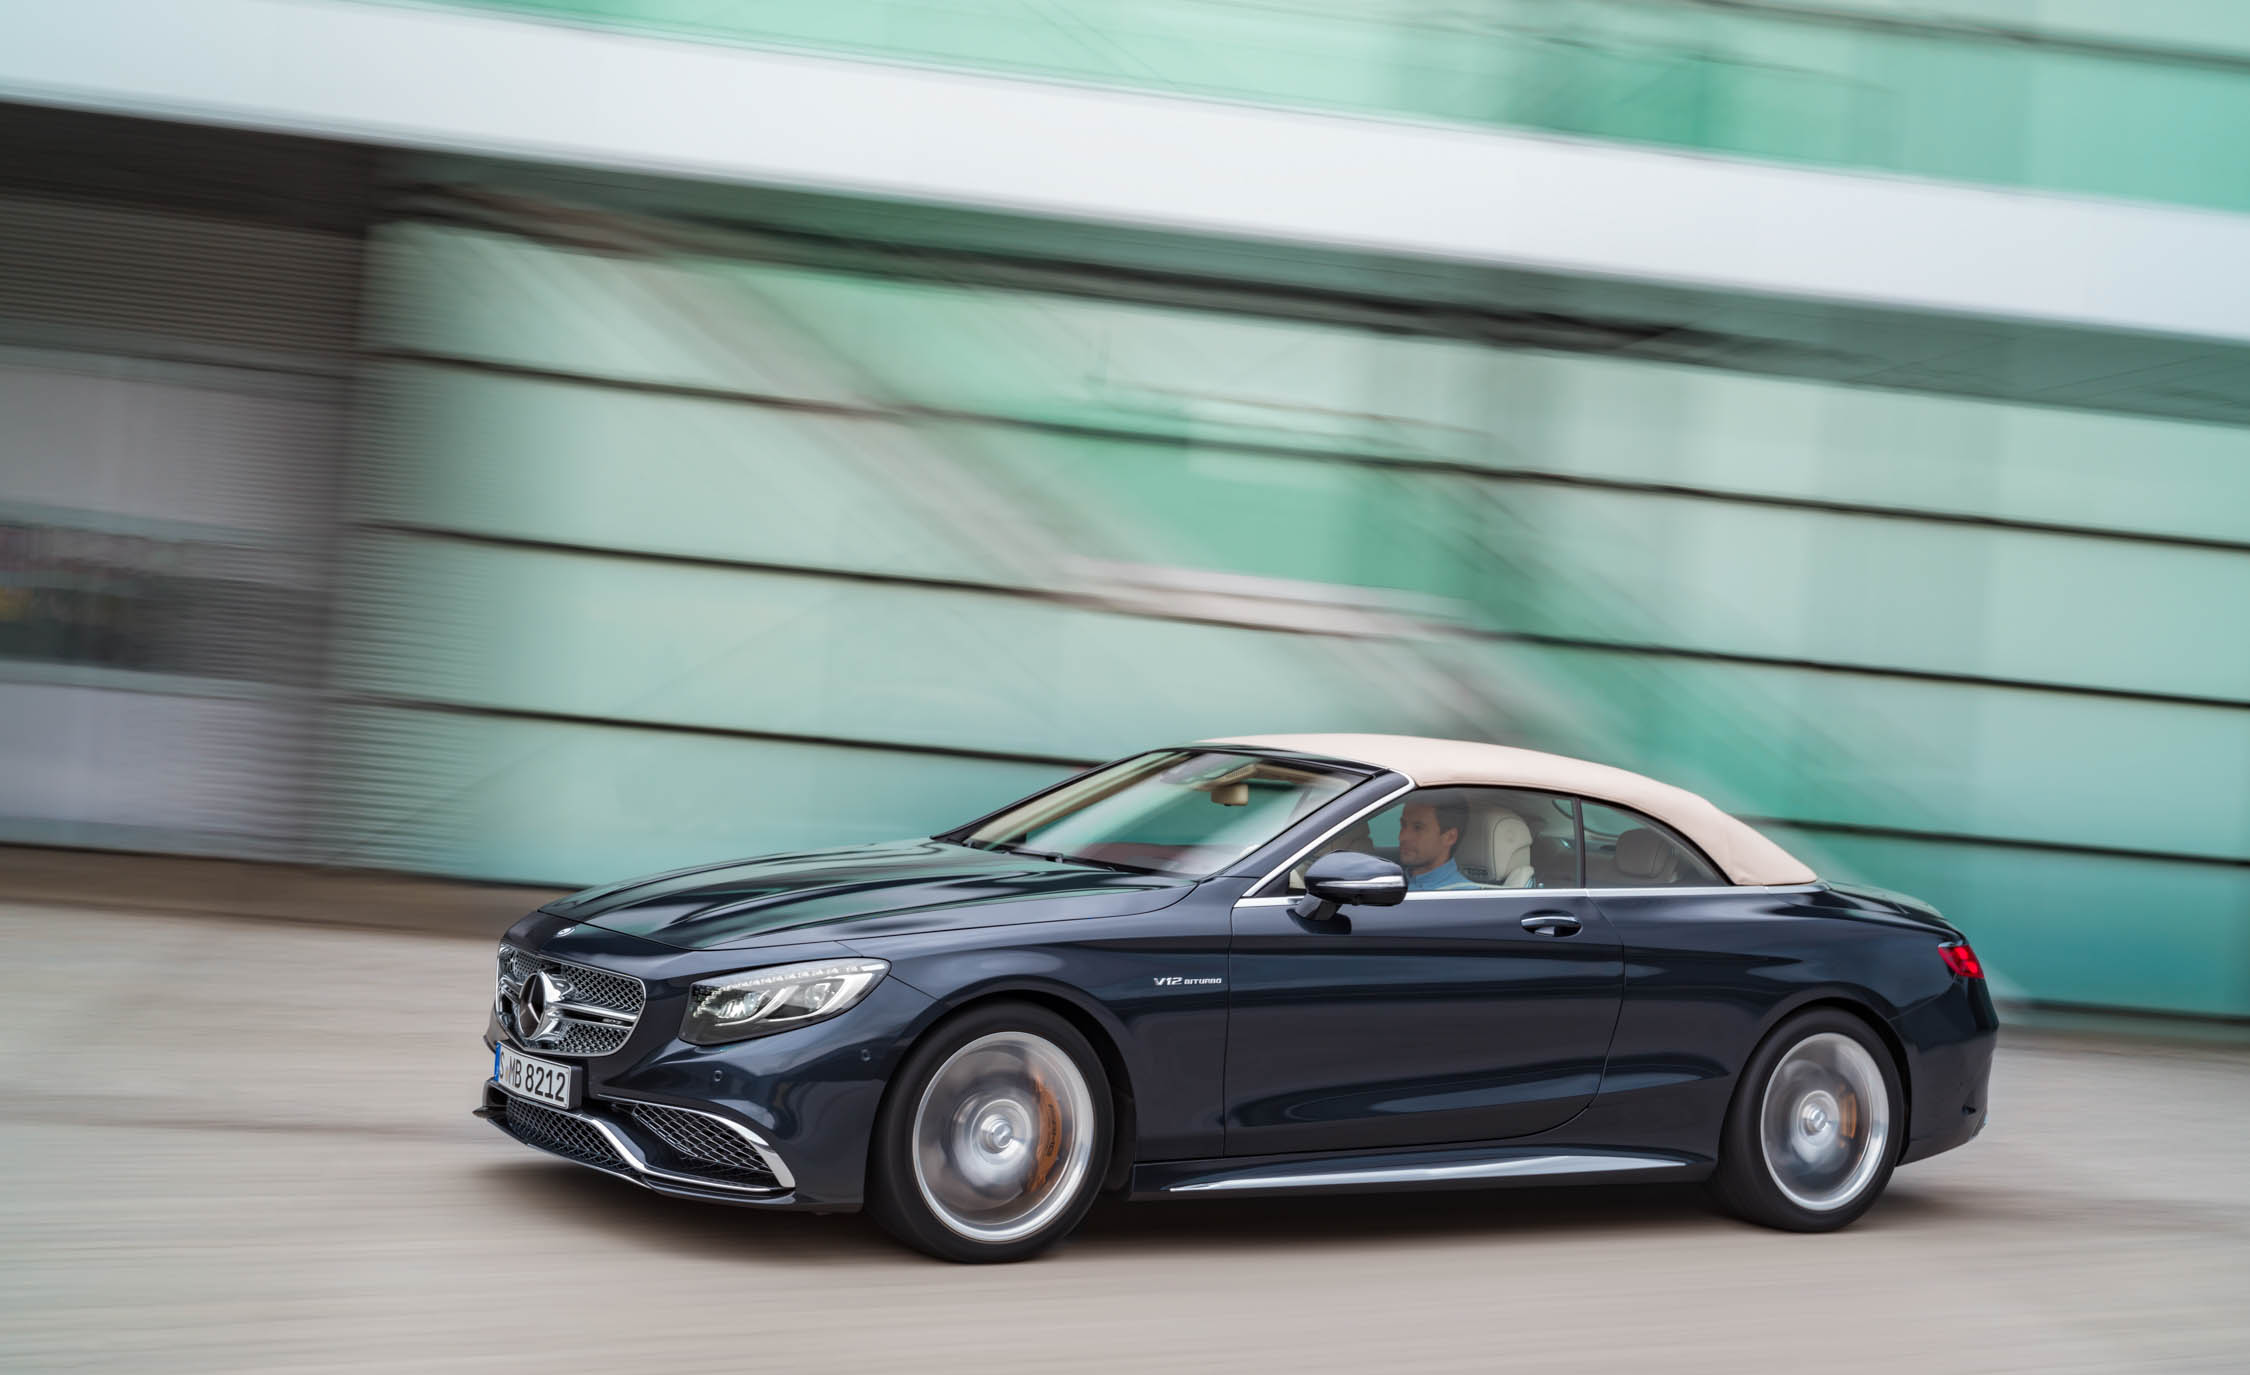 2017 Mercedes Amg S65 Cabriolet Test Drive (View 3 of 15)